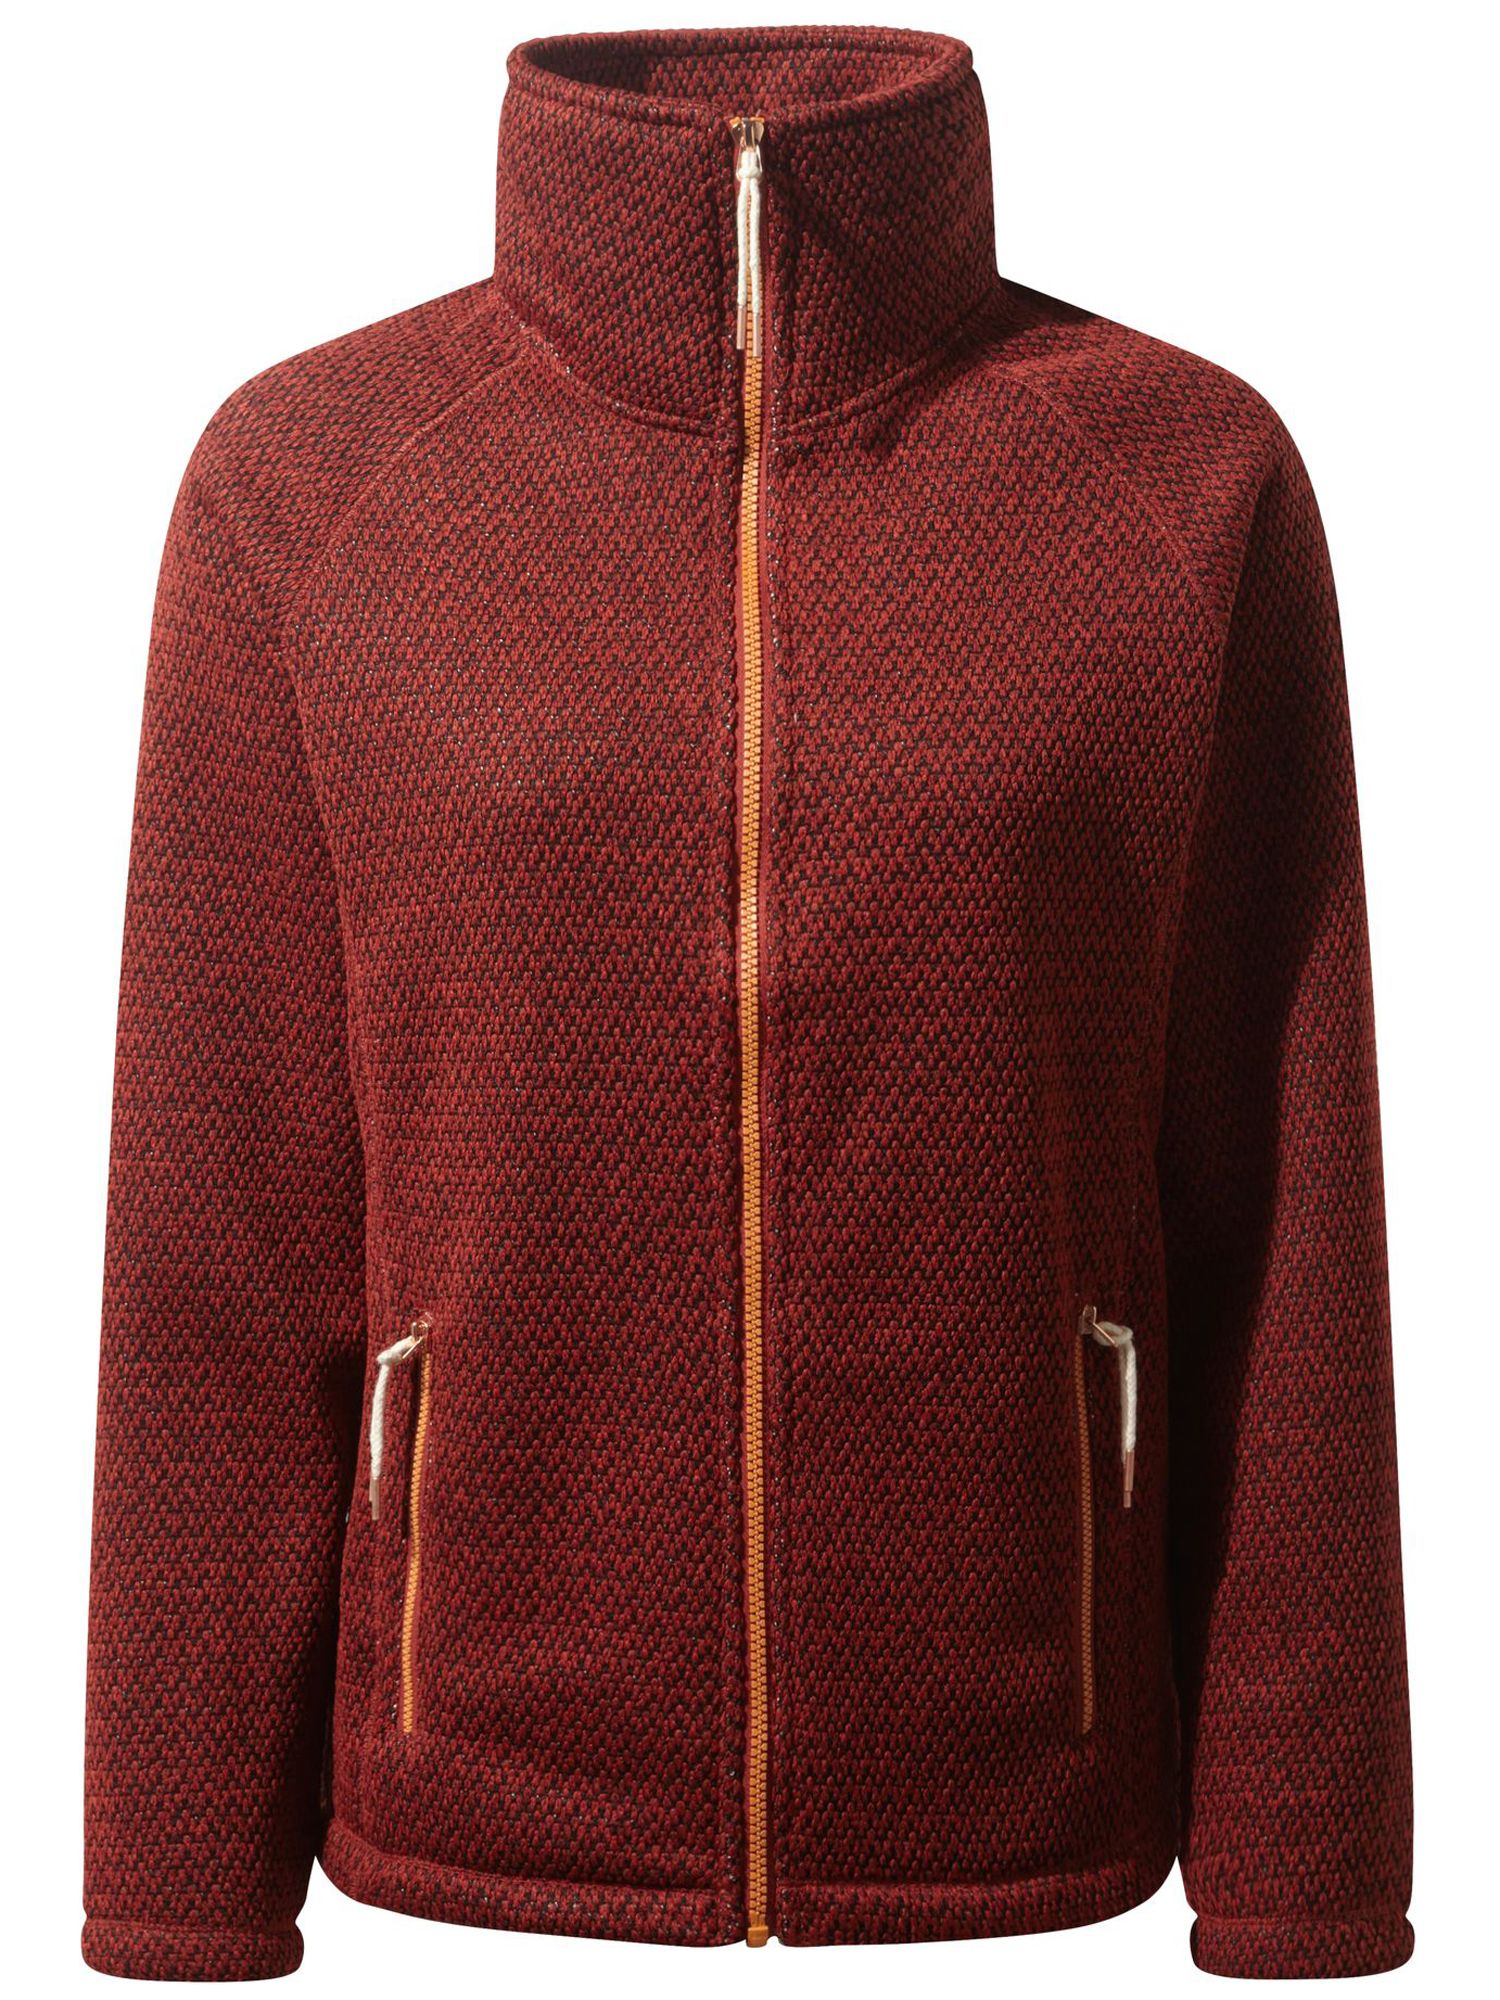 Craghoppers Jasmine Jacket, Red